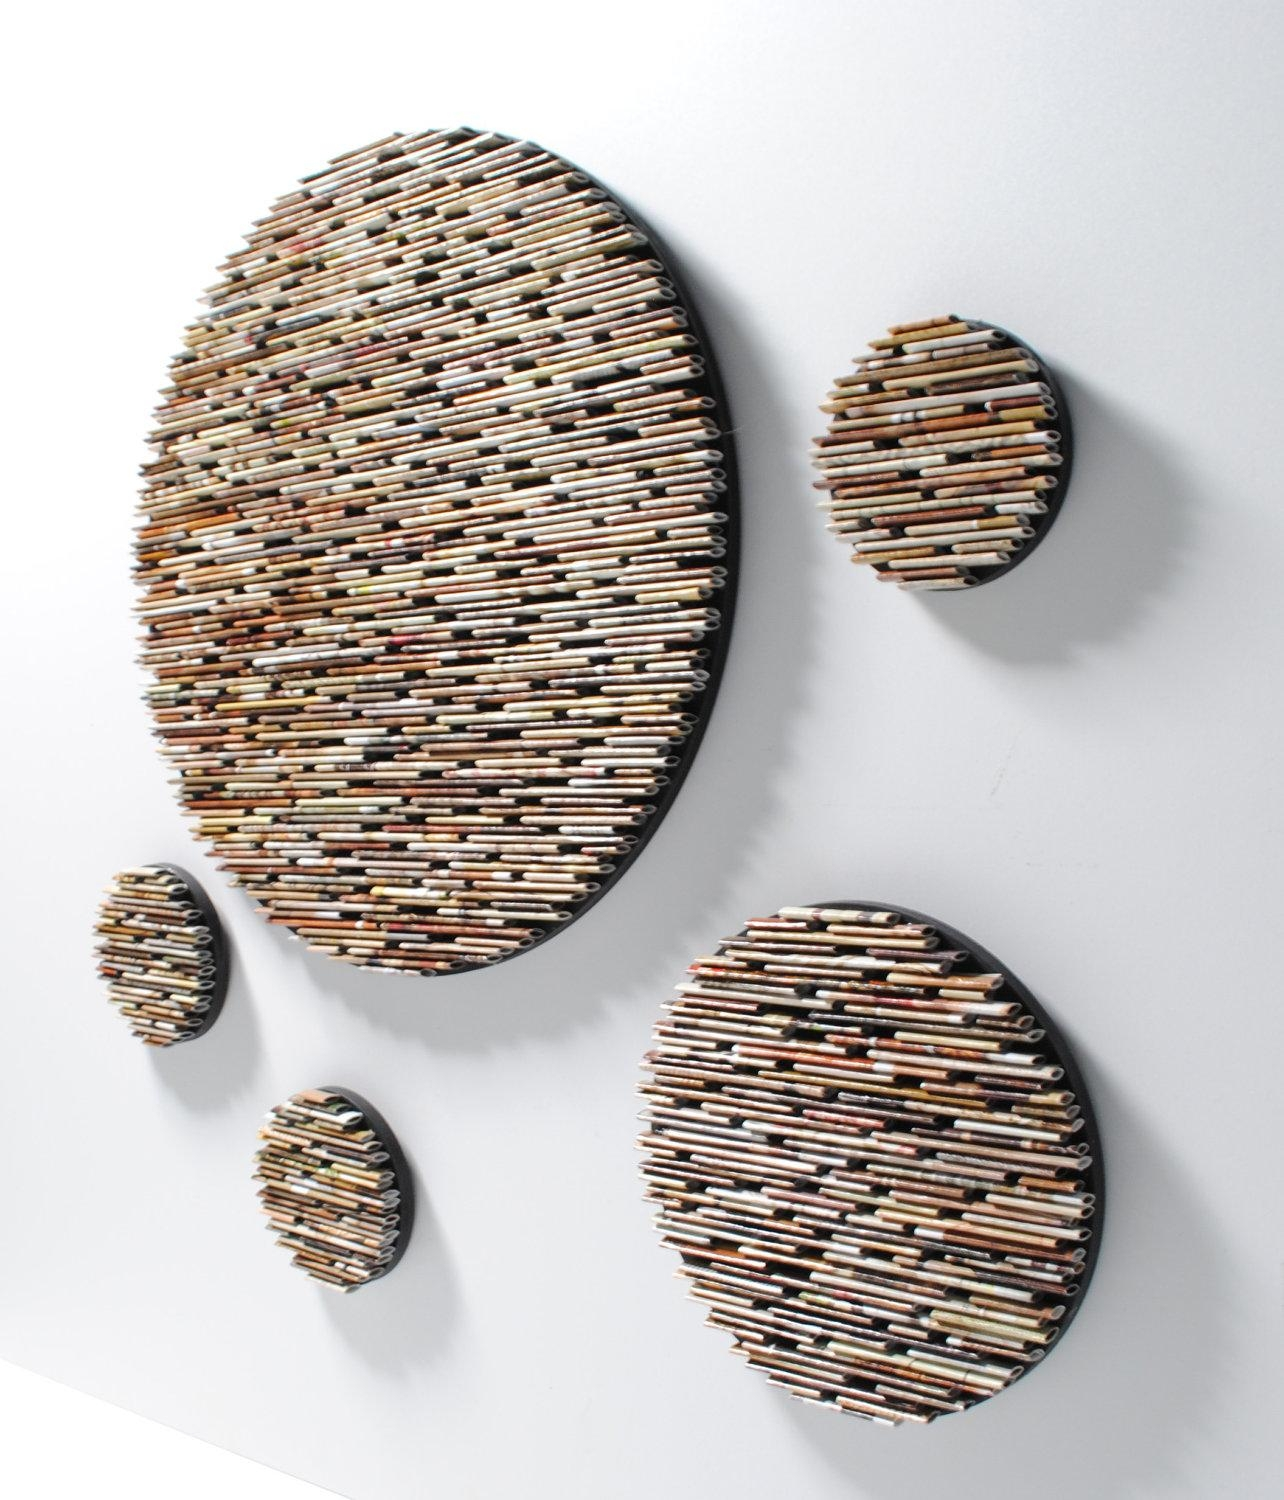 Small Set Of 5 Neutral Colored Round Wall Art Made From Recycled Inside Recycled Wall Art (View 20 of 20)